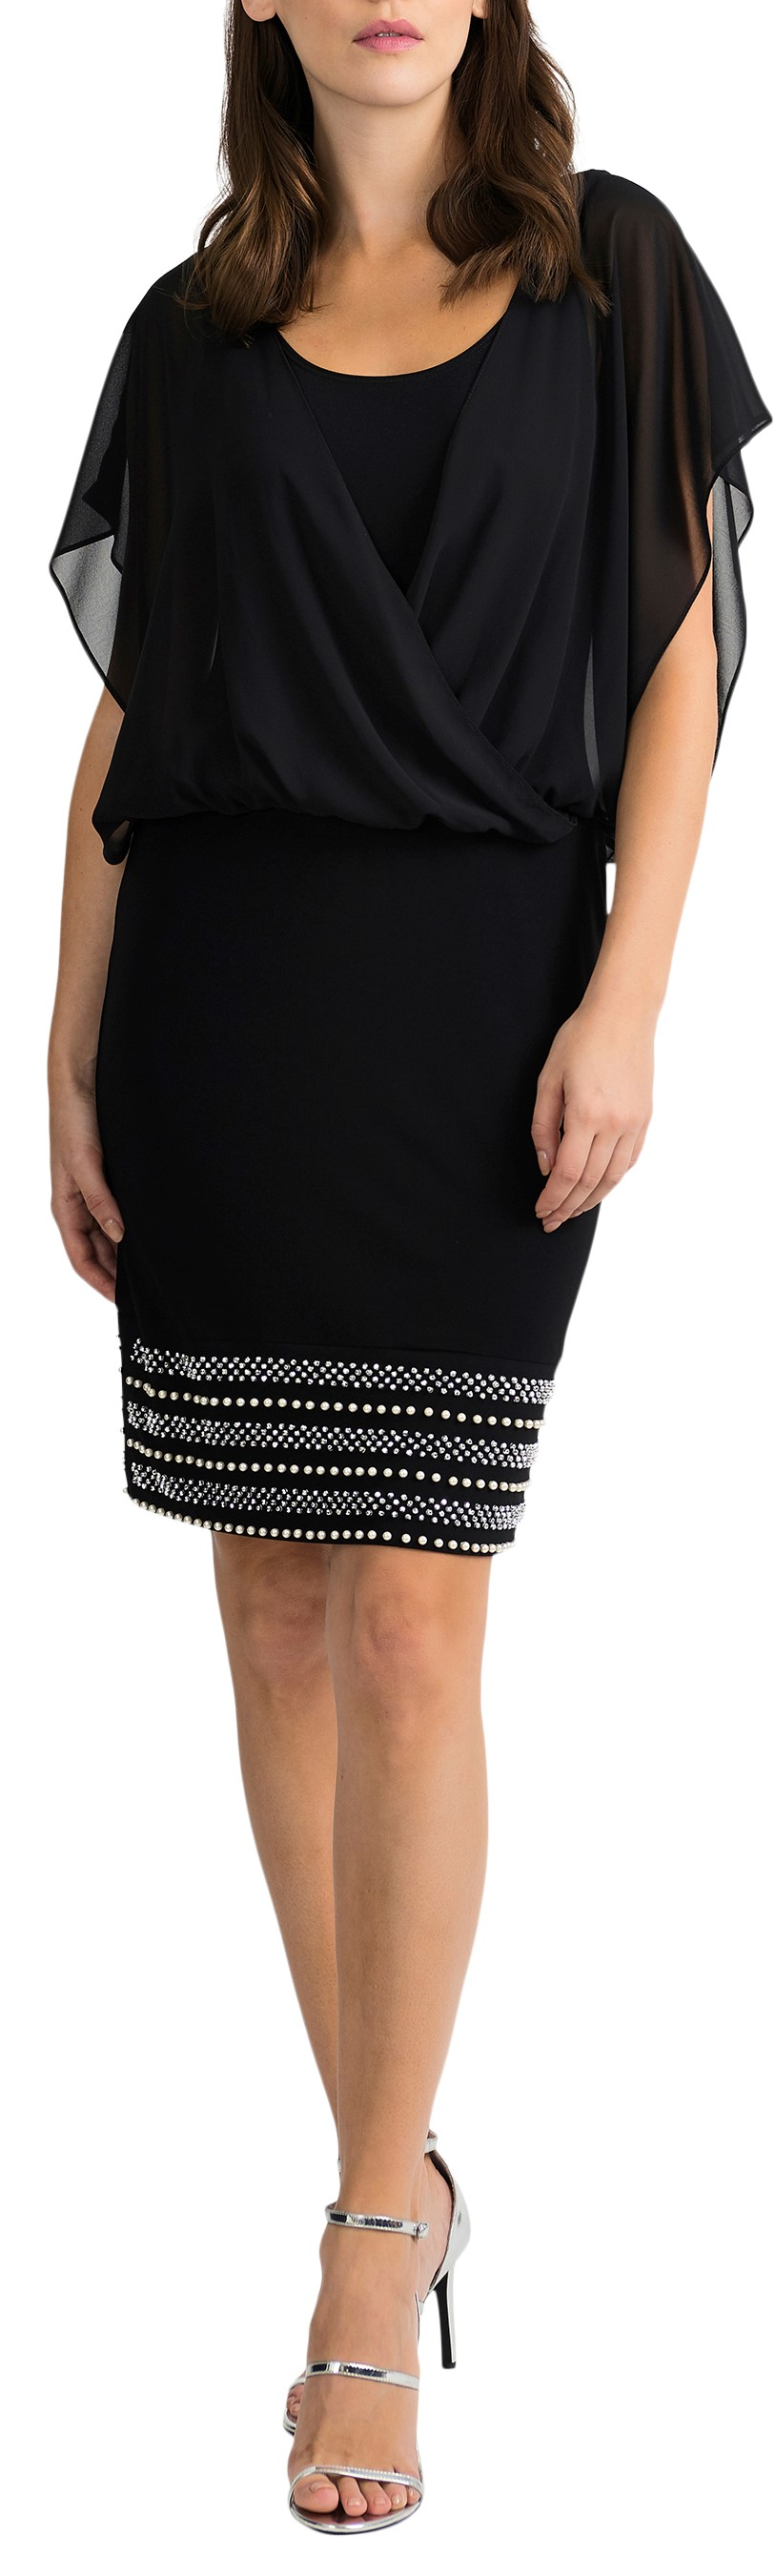 Joseph Ribkoff Womens Embellished Dress Style 201166, 3 Colors Available